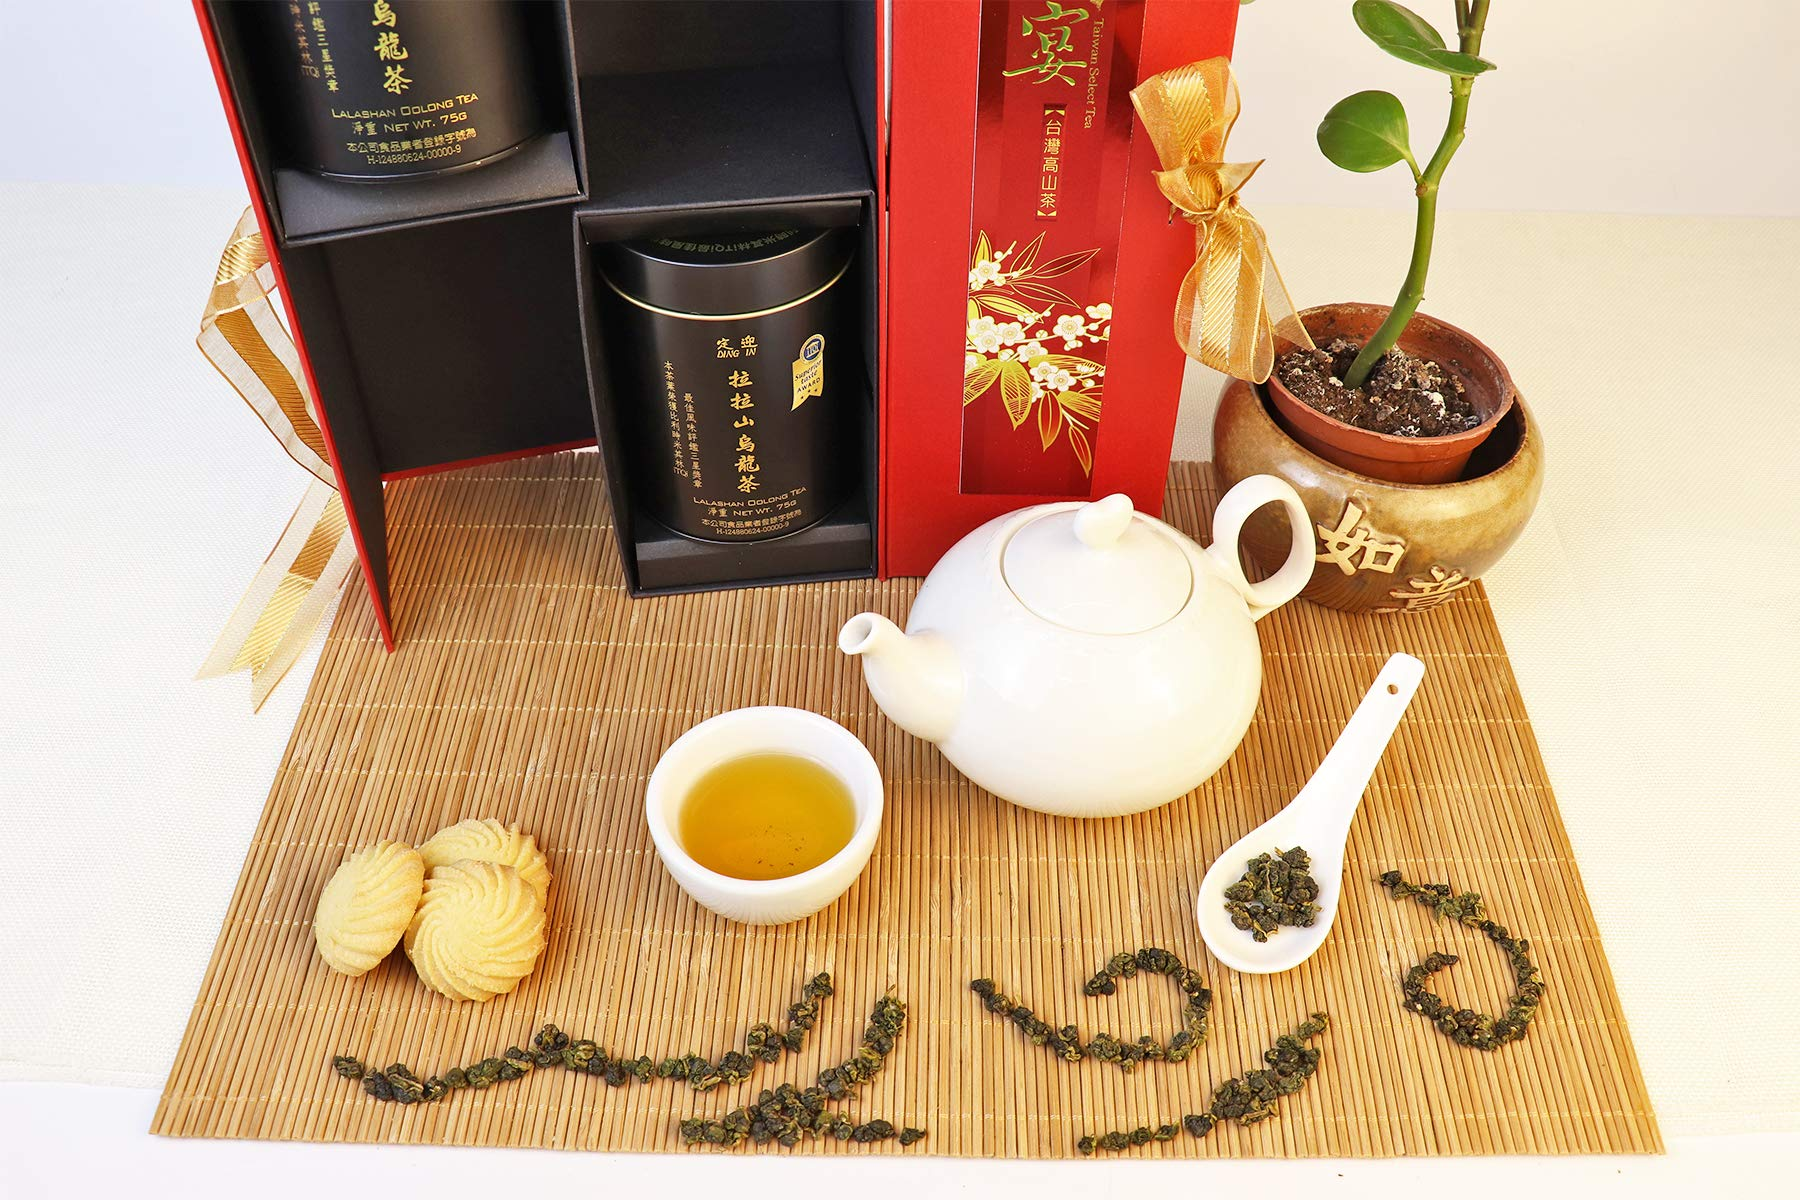 DING IN Lalashan Oolong Tea Feast Straight Gift Box 75g/2cans by Ding In ltd. (Image #3)